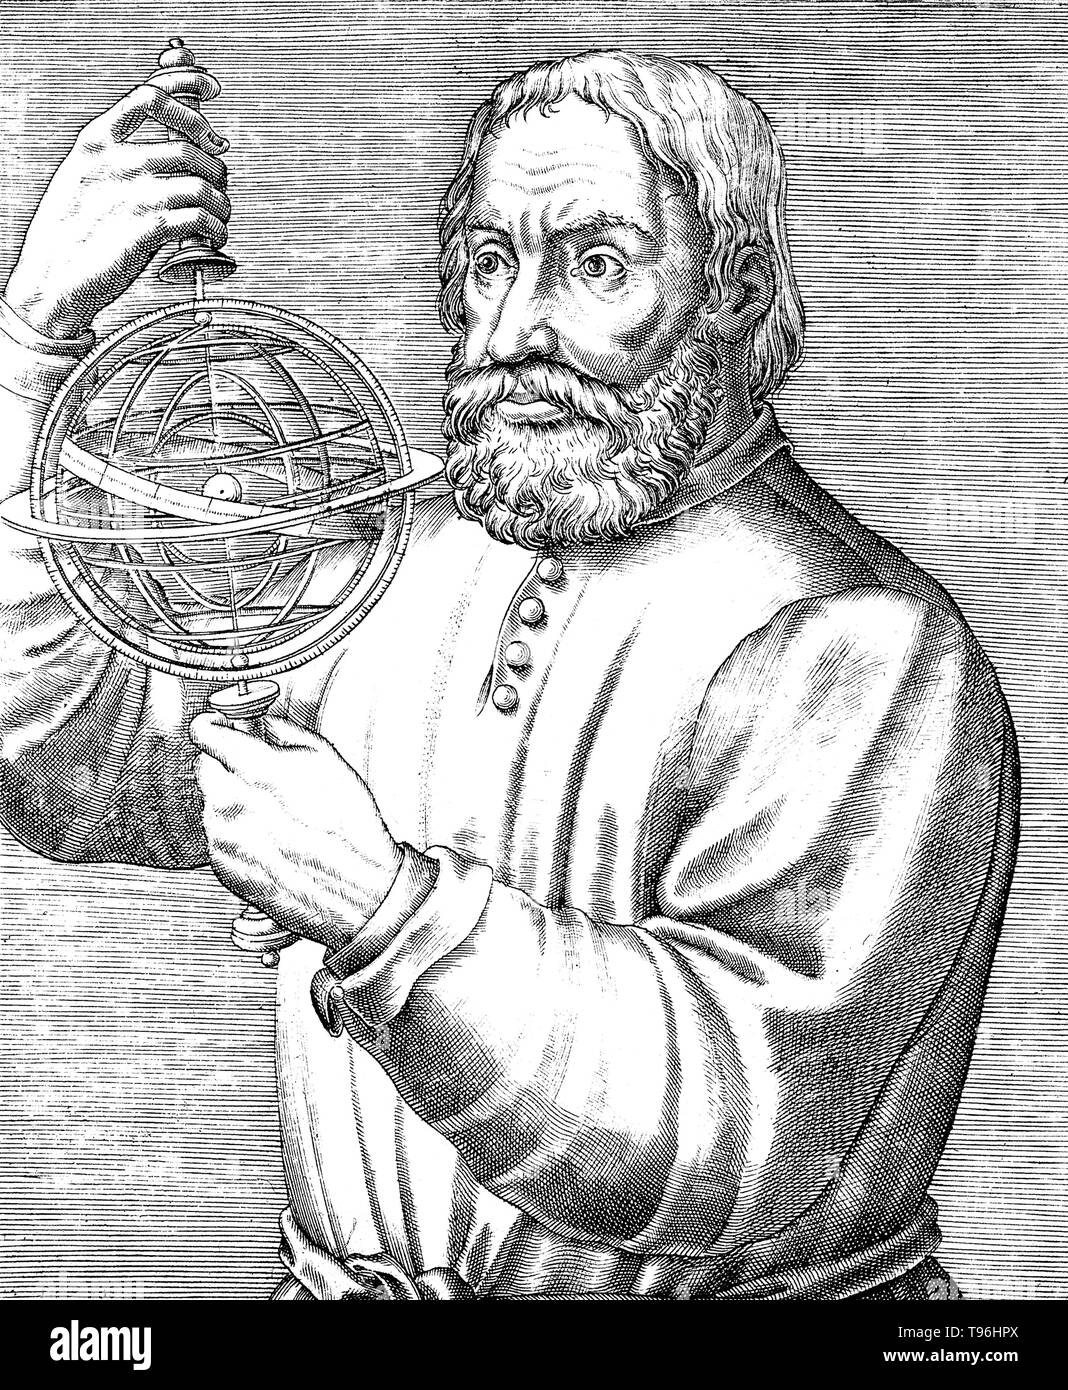 Johannes de Sacrobosco (circa 1195 - circa 1256), was a scholar, monk and astronomer who was a teacher at the University of Paris. He wrote a short introduction to the Hindu-Arabic numeral system which became the most widely read introduction to that subject in the later medieval centuries (judging from the number of manuscript copies that survive today). - Stock Image